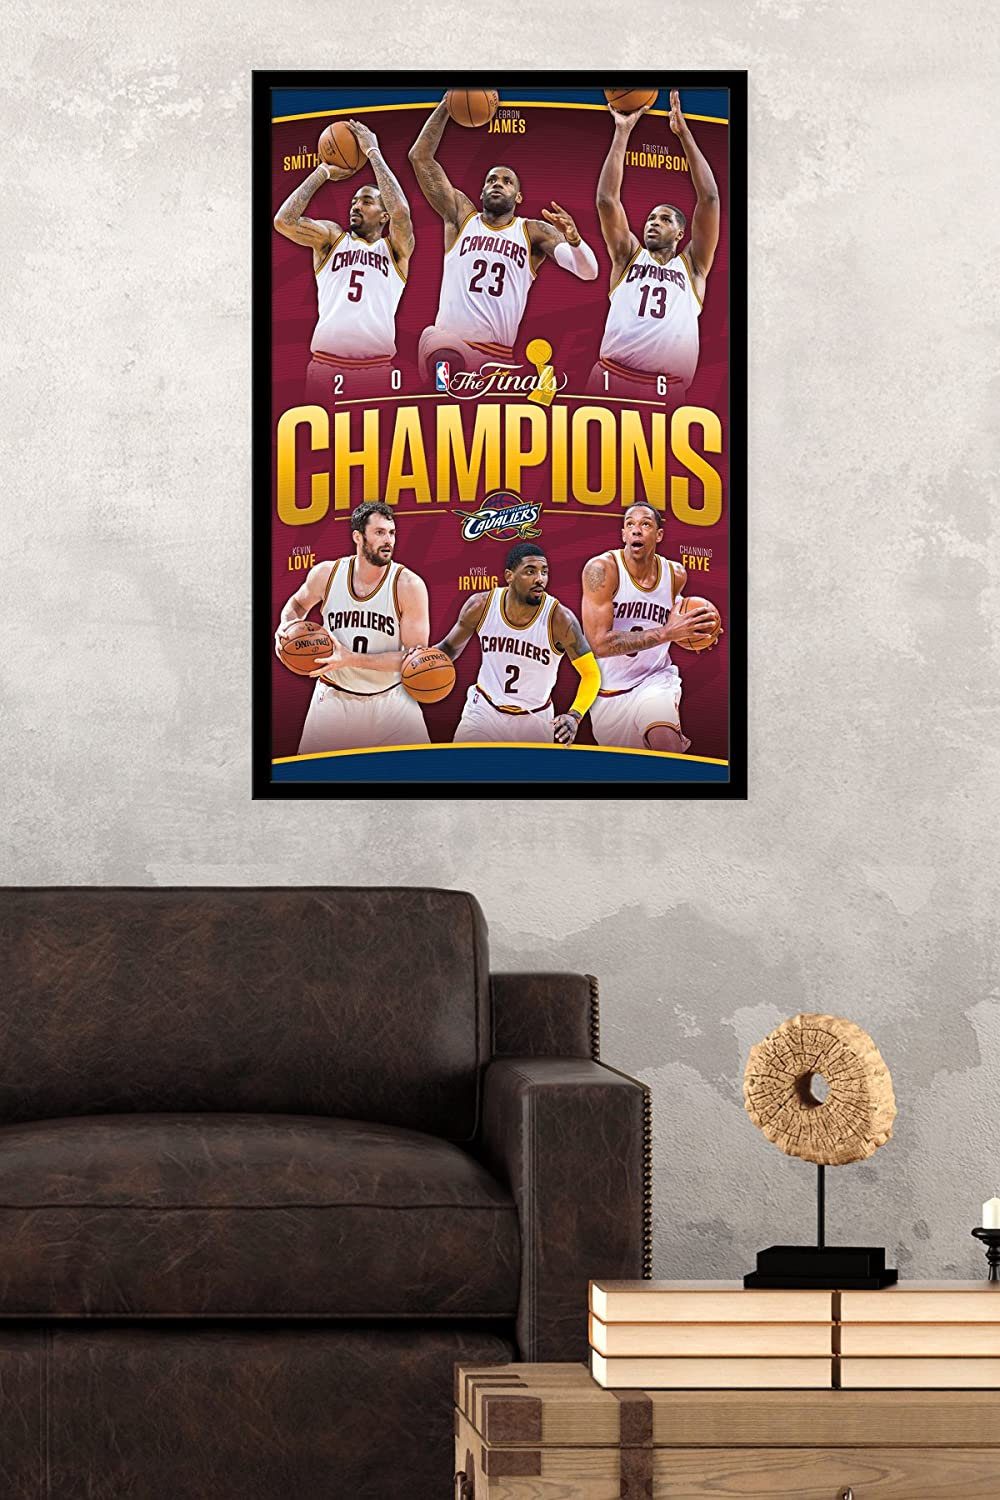 Amazon trends international 2016 nba finals champions amazon trends international 2016 nba finals champions cleveland cavaliers collectors edition wall poster 24 x 36 home kitchen amipublicfo Image collections